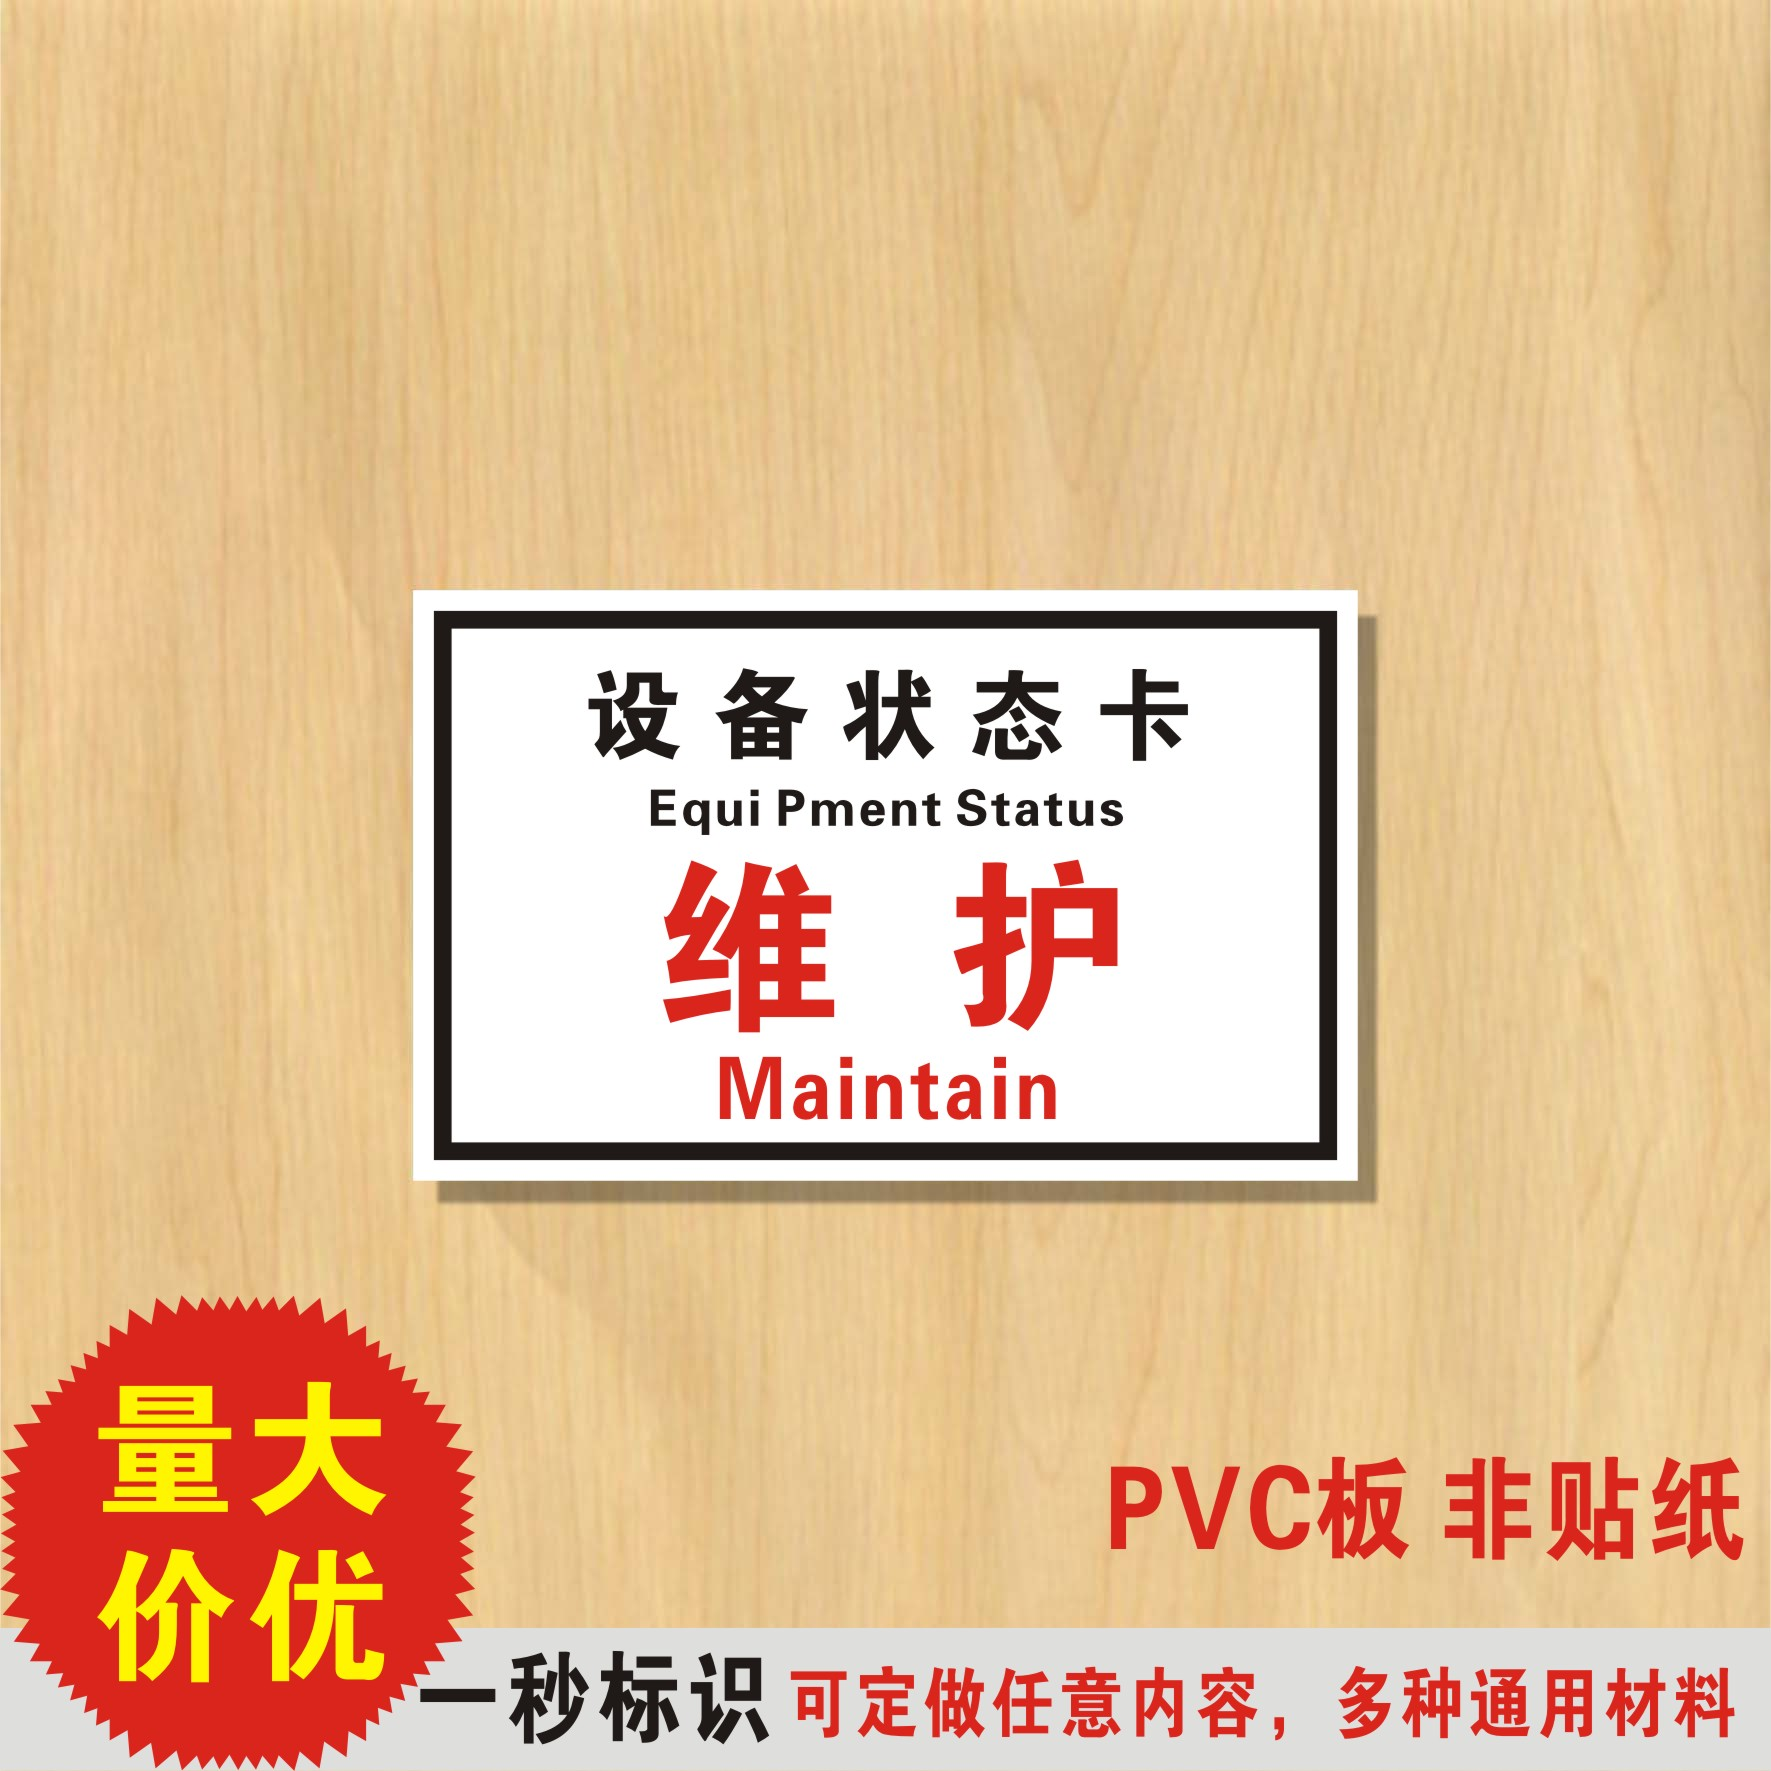 Maintenance maintenance of equipment state identification card identification card device status card device status signs custom signs